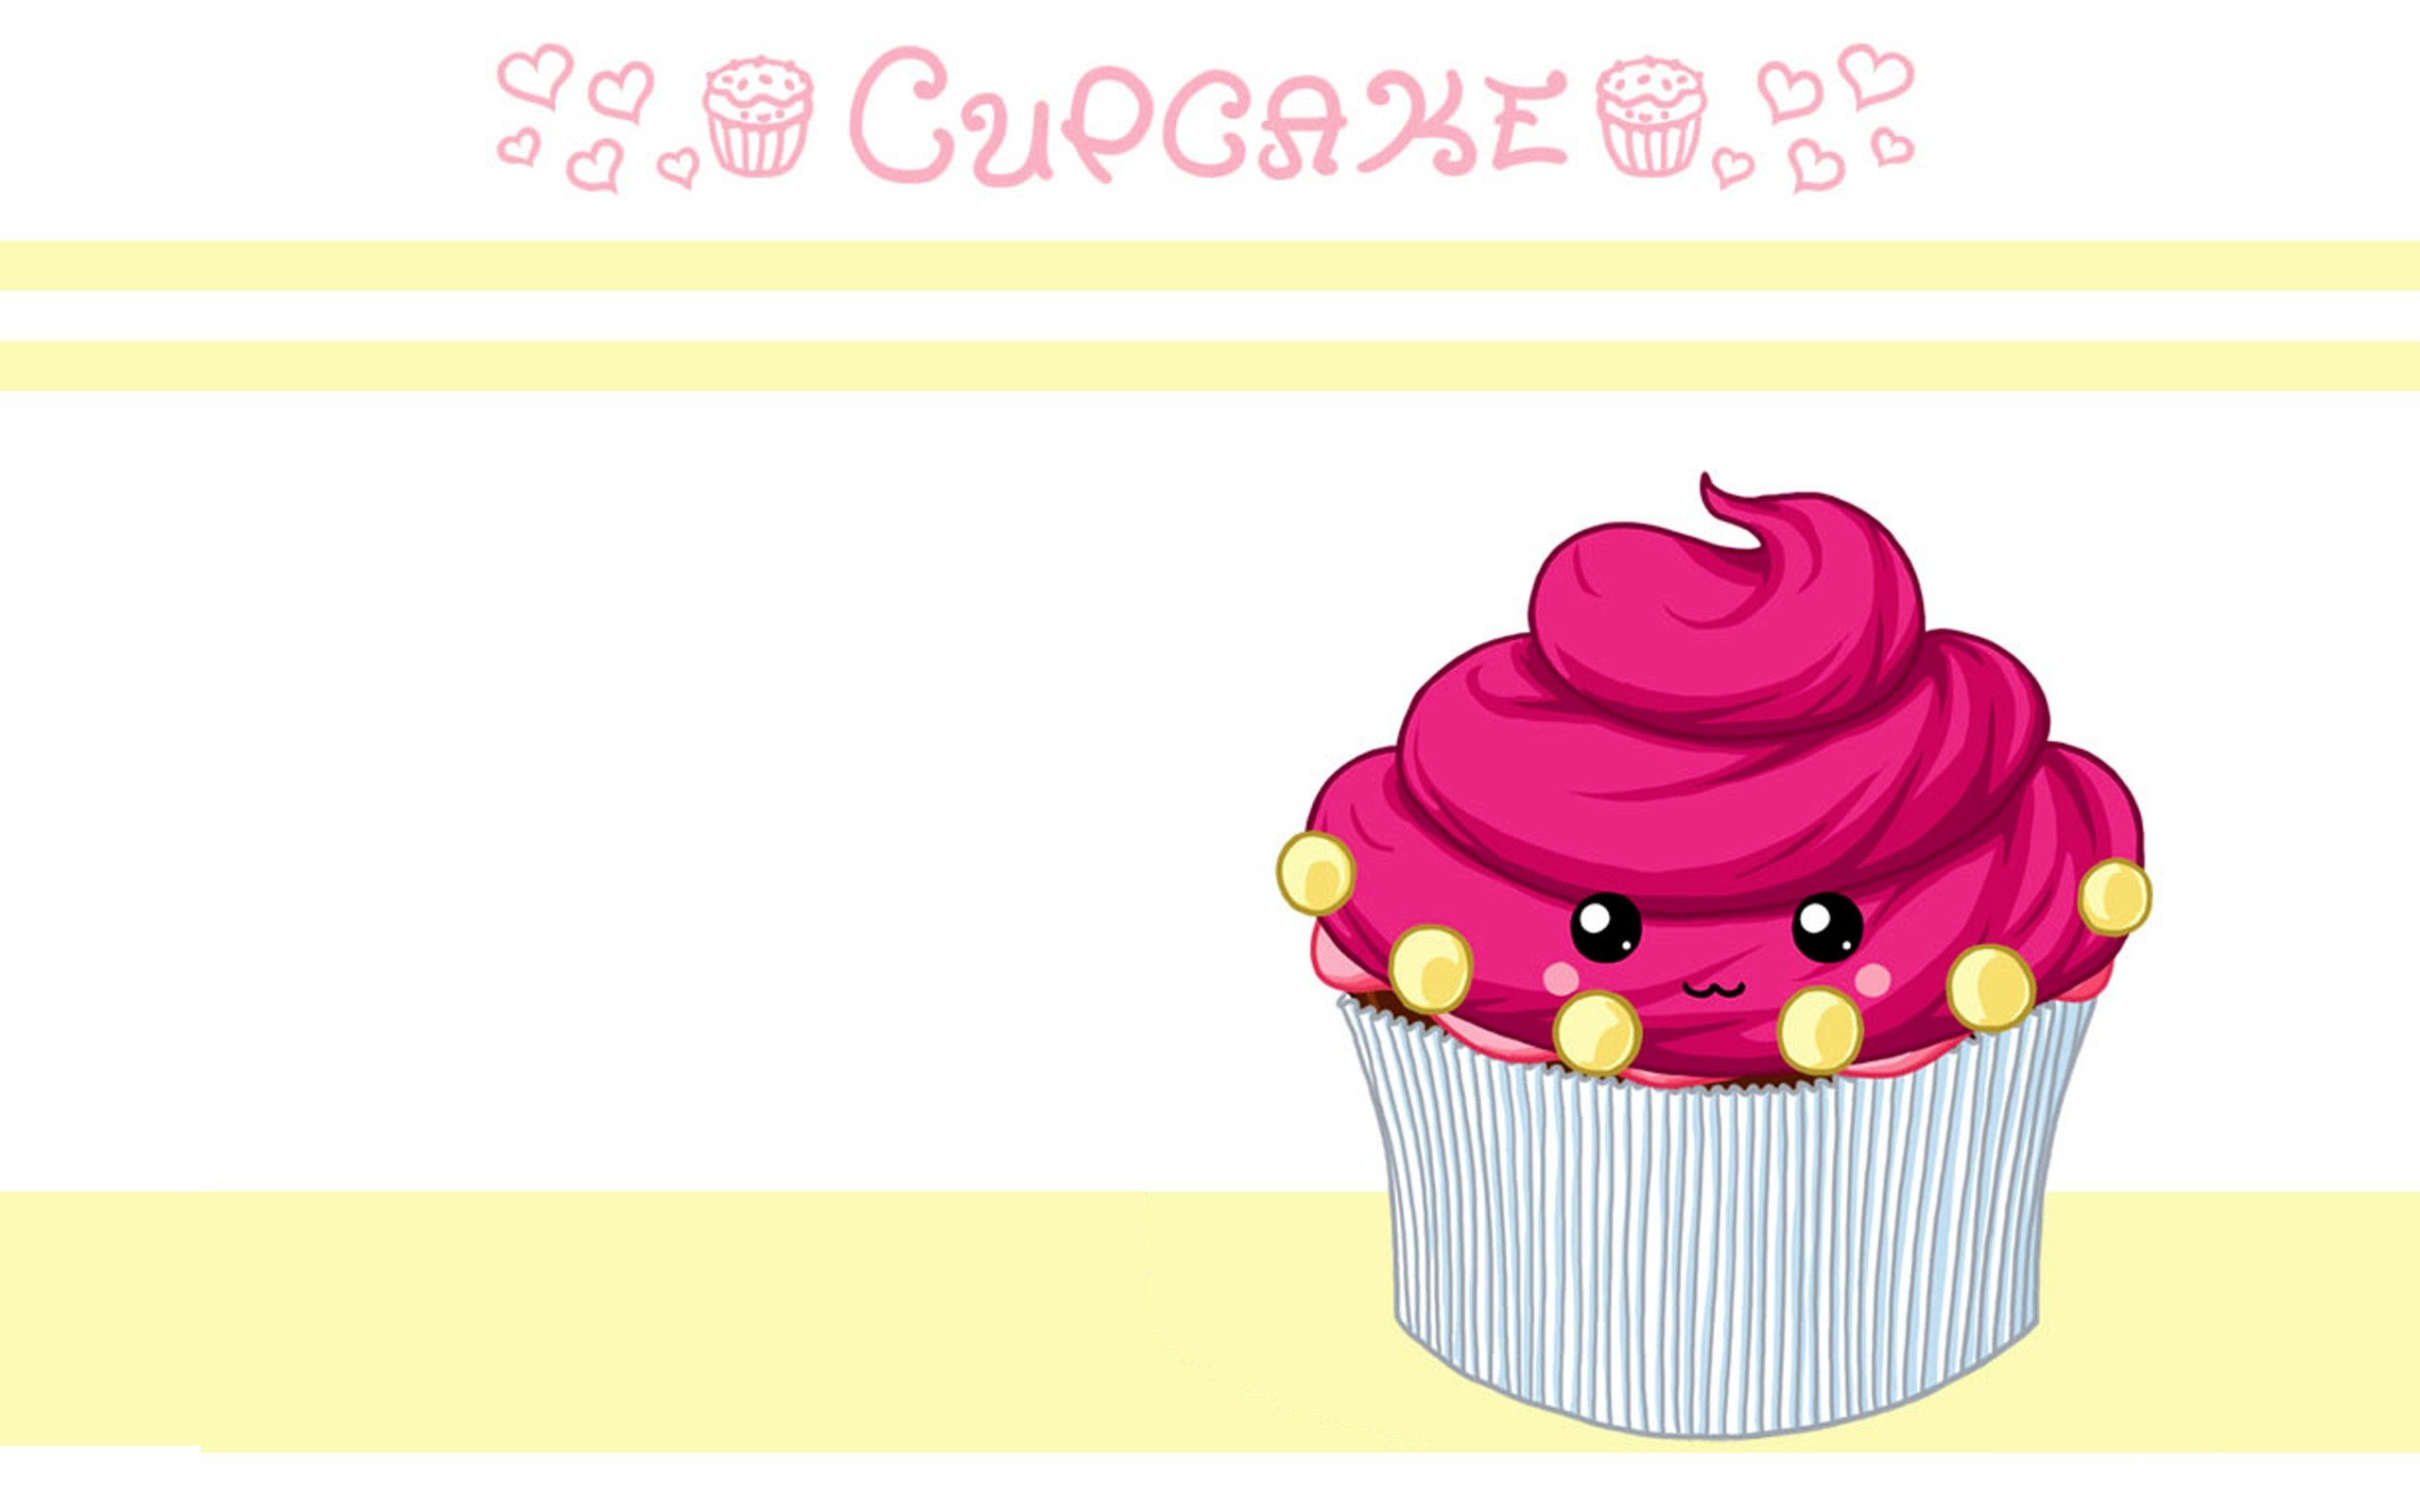 Super Cute Girly Wallpaper Cute Cupcakes Wallpaper 183 ①